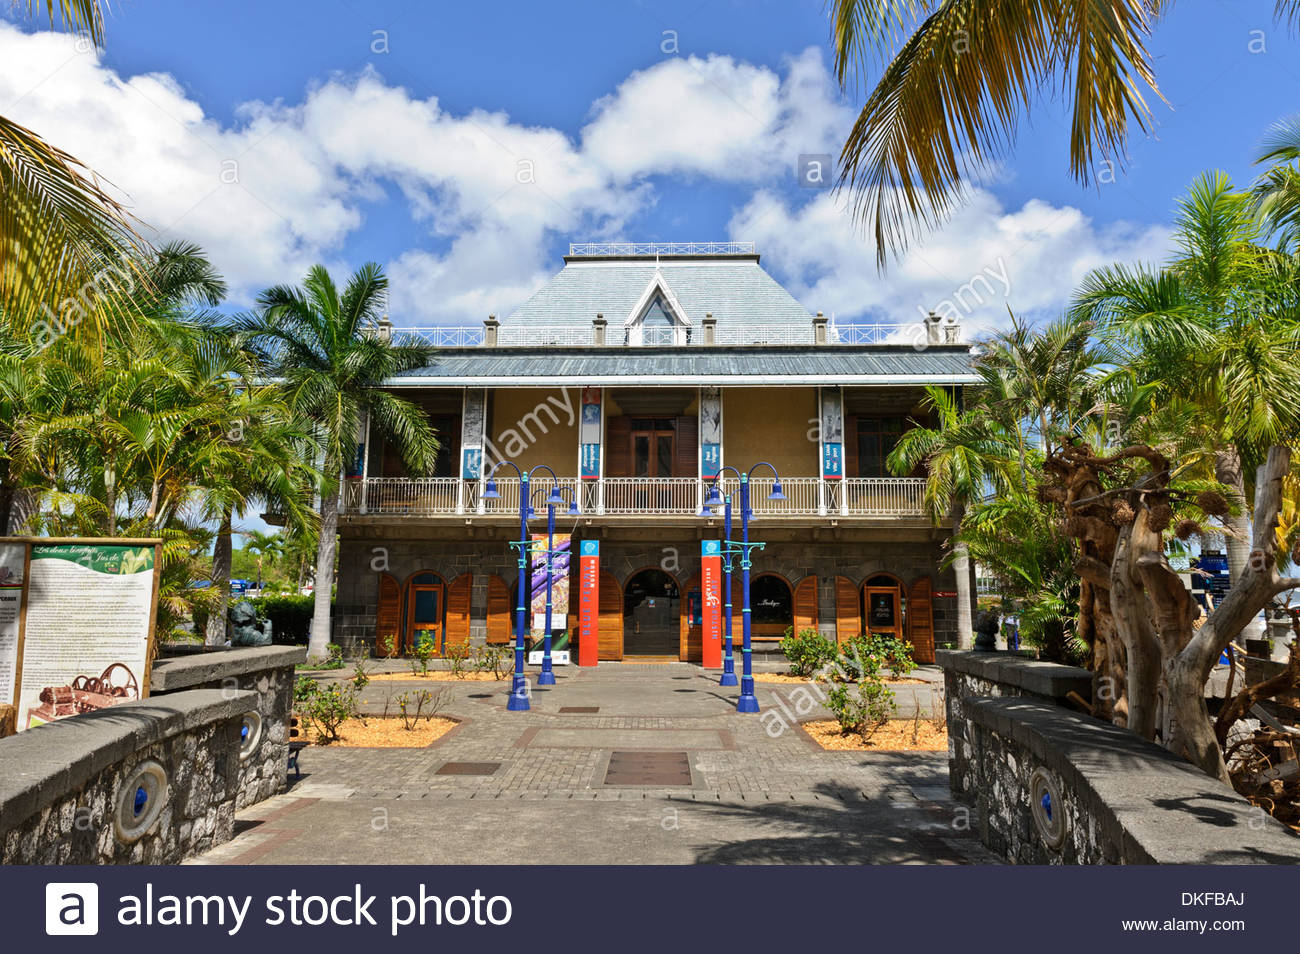 Blue Penny Museum Port Louis, Blue Penny Museum, Port Louis, Mauritius Stock Photo, Royalty Free ...